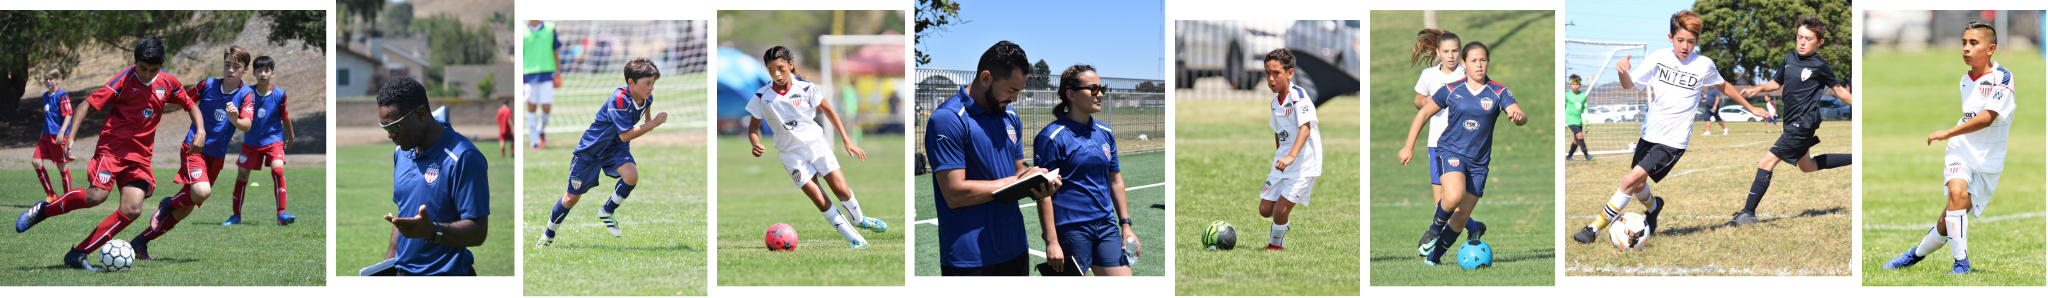 Collage of AYSO players and coaches